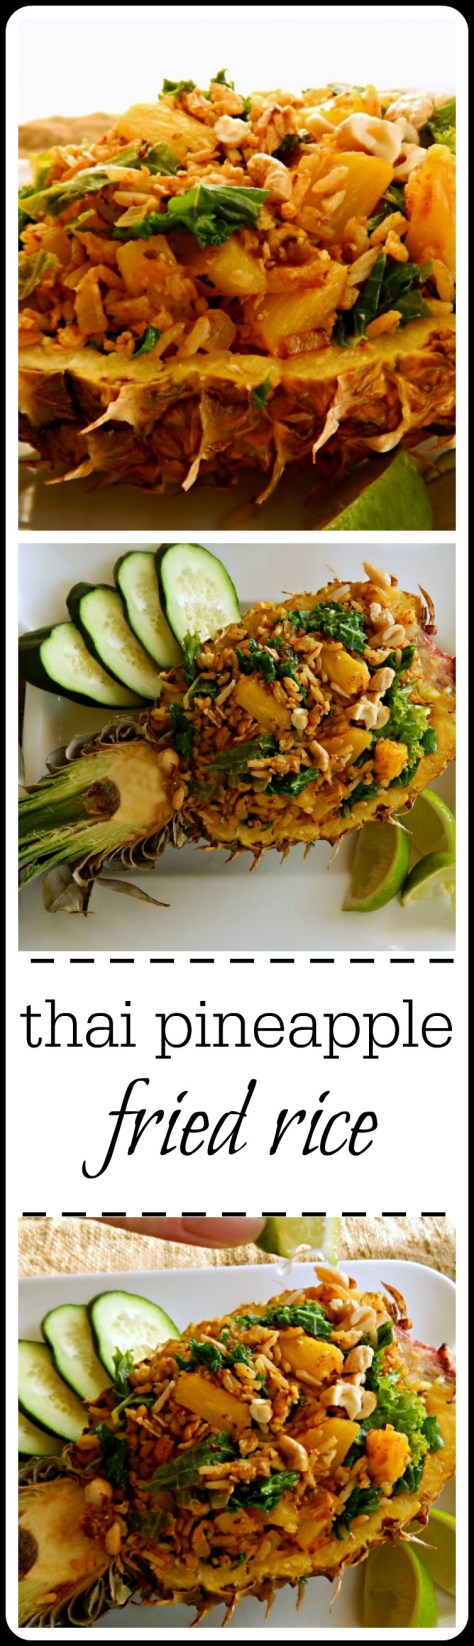 This Thai Fried Rice is pretty amazing and has a dramatic presentation!